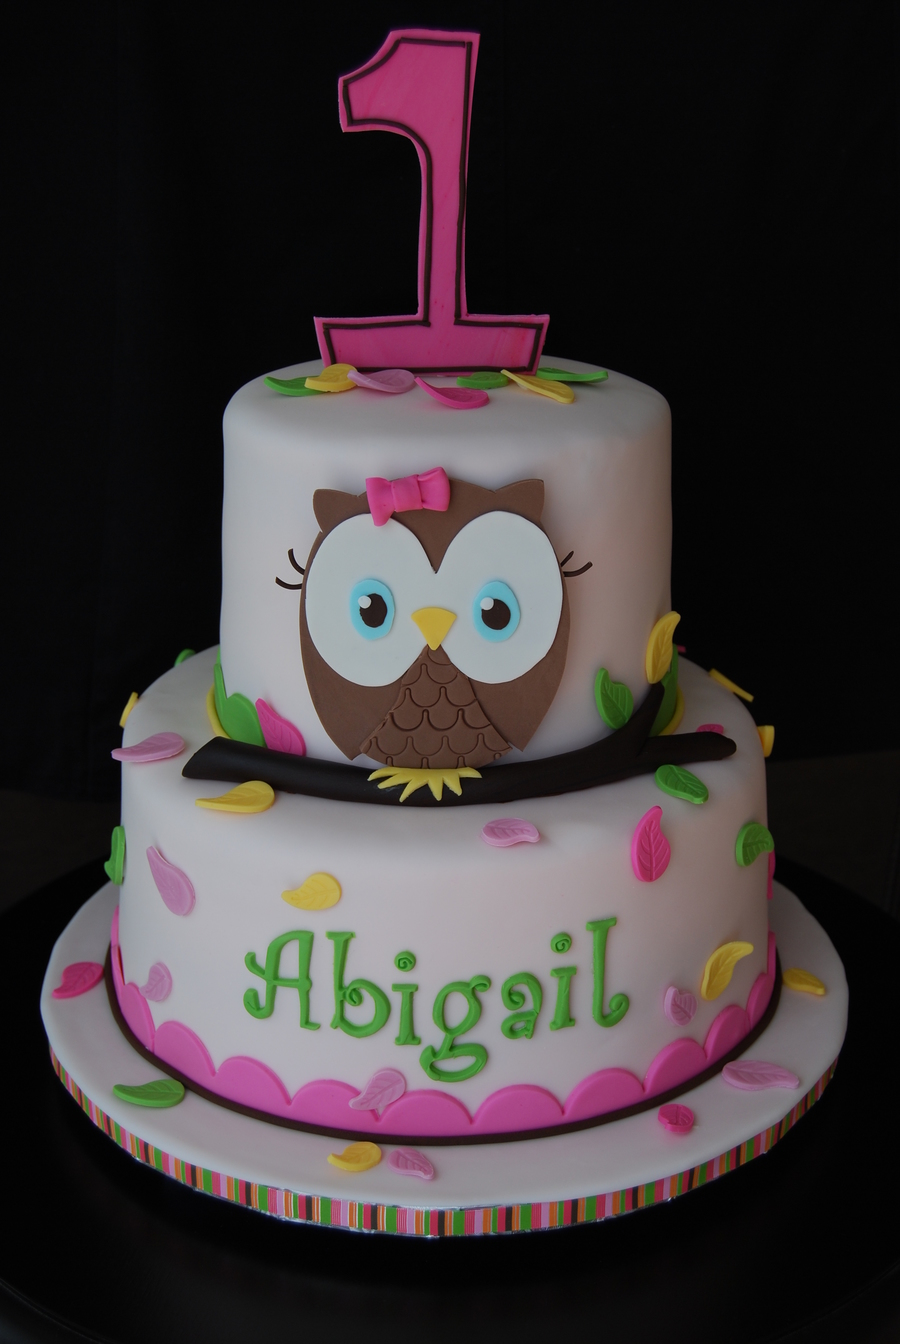 Wondrous Owl First Birthday Cakecentral Com Funny Birthday Cards Online Alyptdamsfinfo